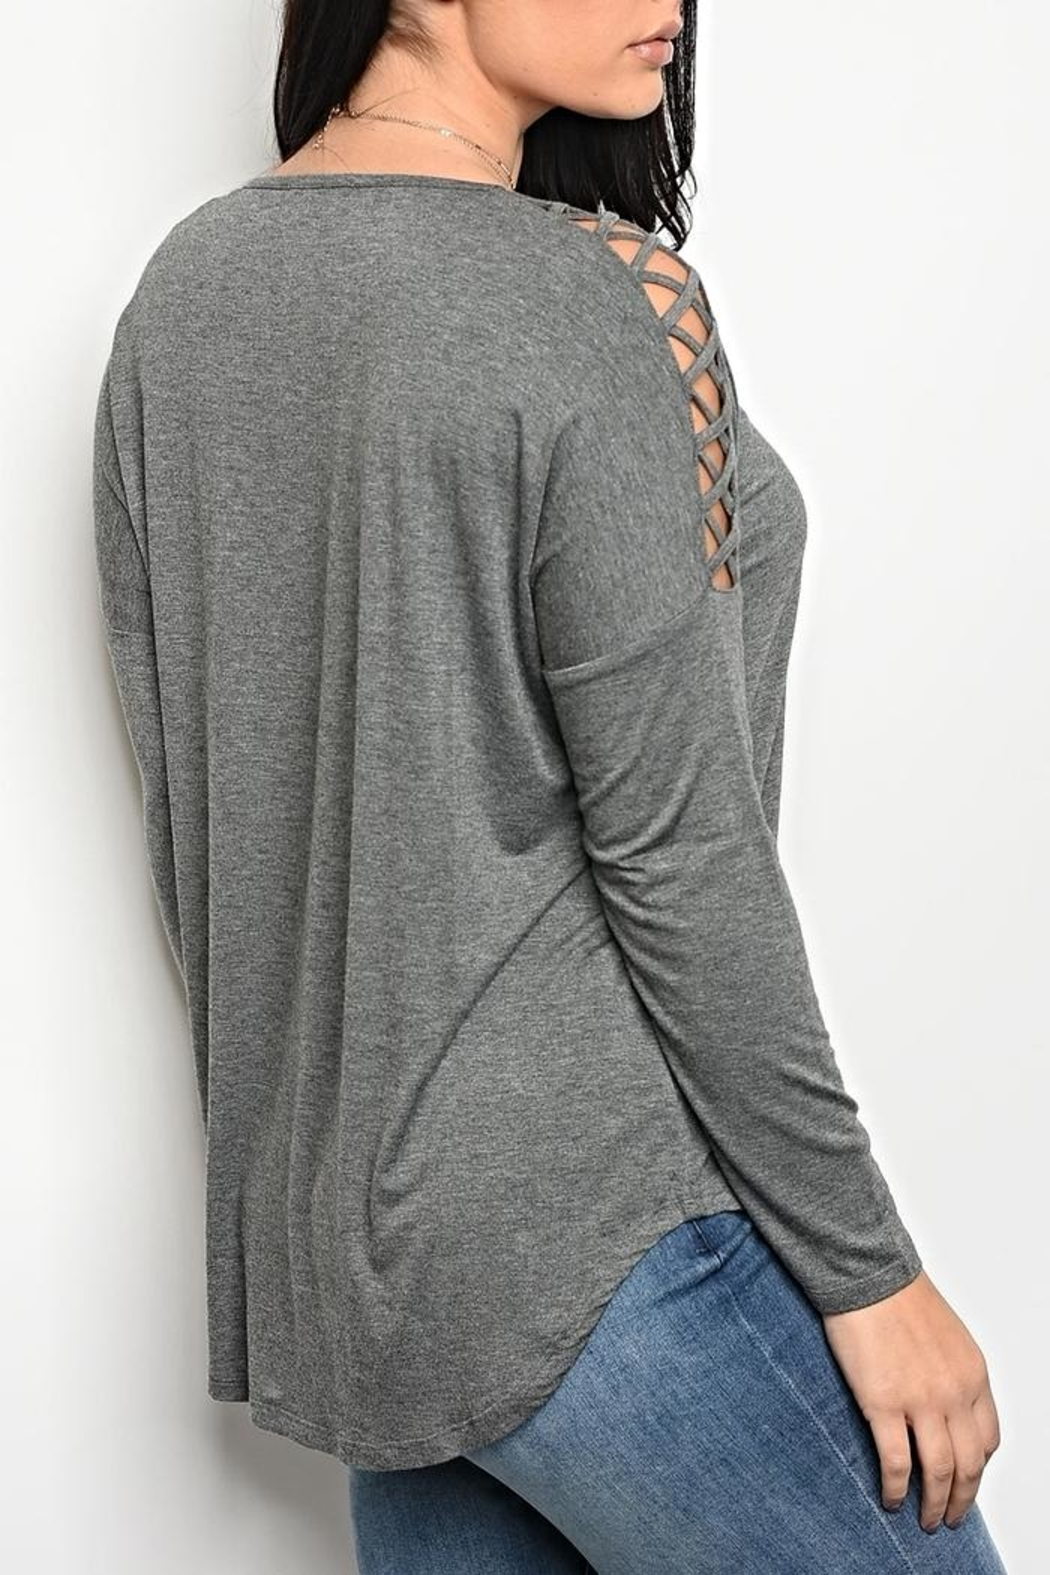 LoveRiche Grey Laceup Tee - Front Full Image